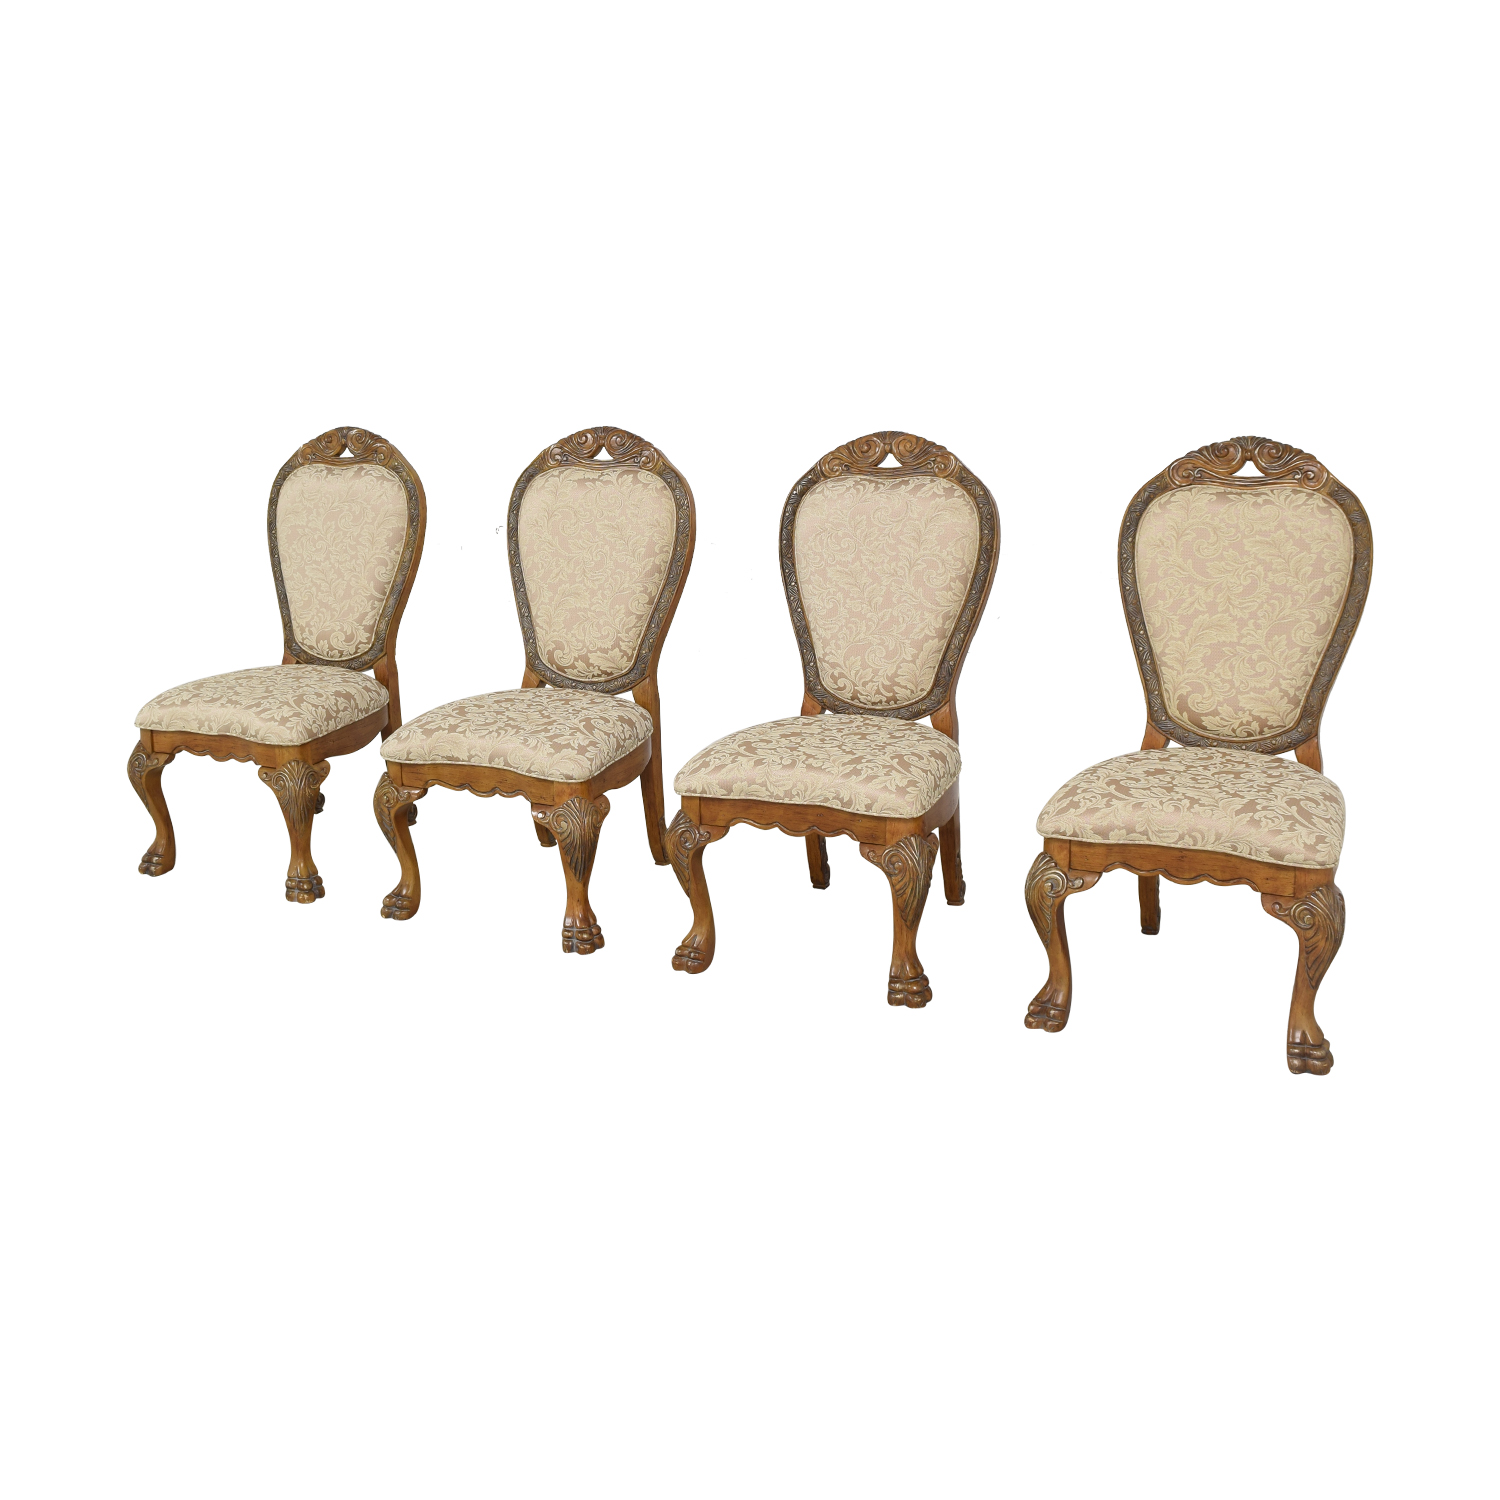 Michael Amini Michael Amini Upholstered Dining Chairs tan and brown